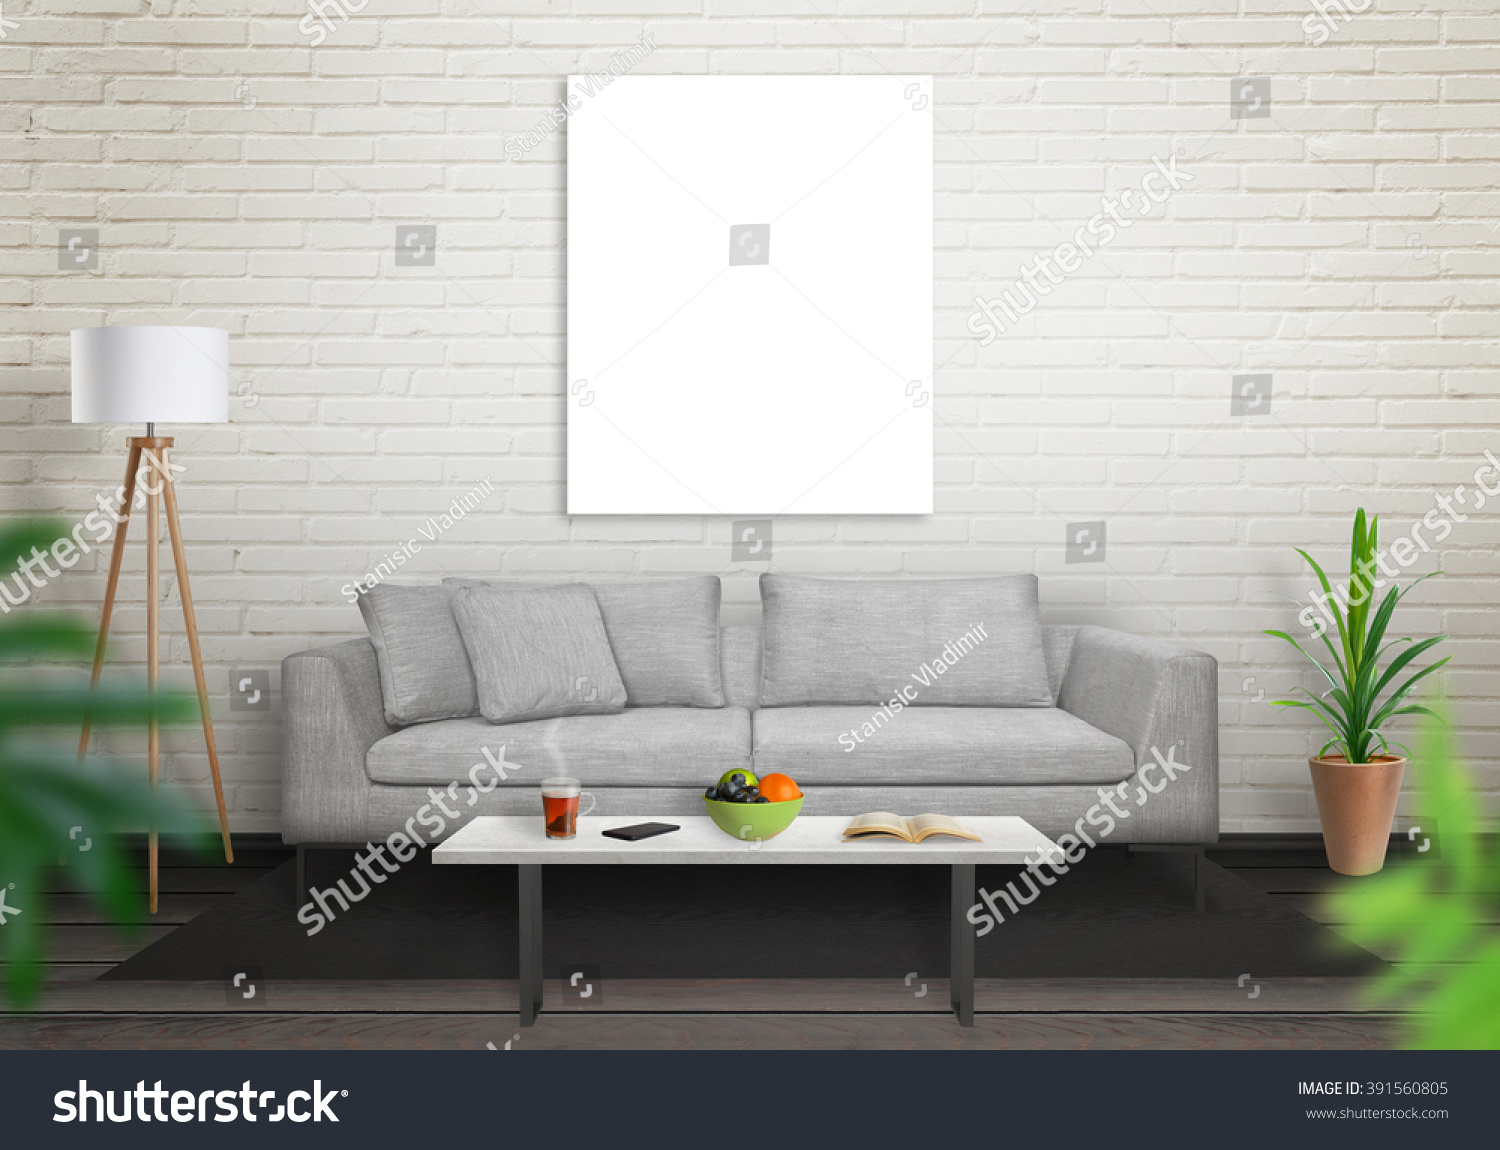 Isolated Art Canvas In Living Room For Mockup Brick White Wall And Black Wooden Floor